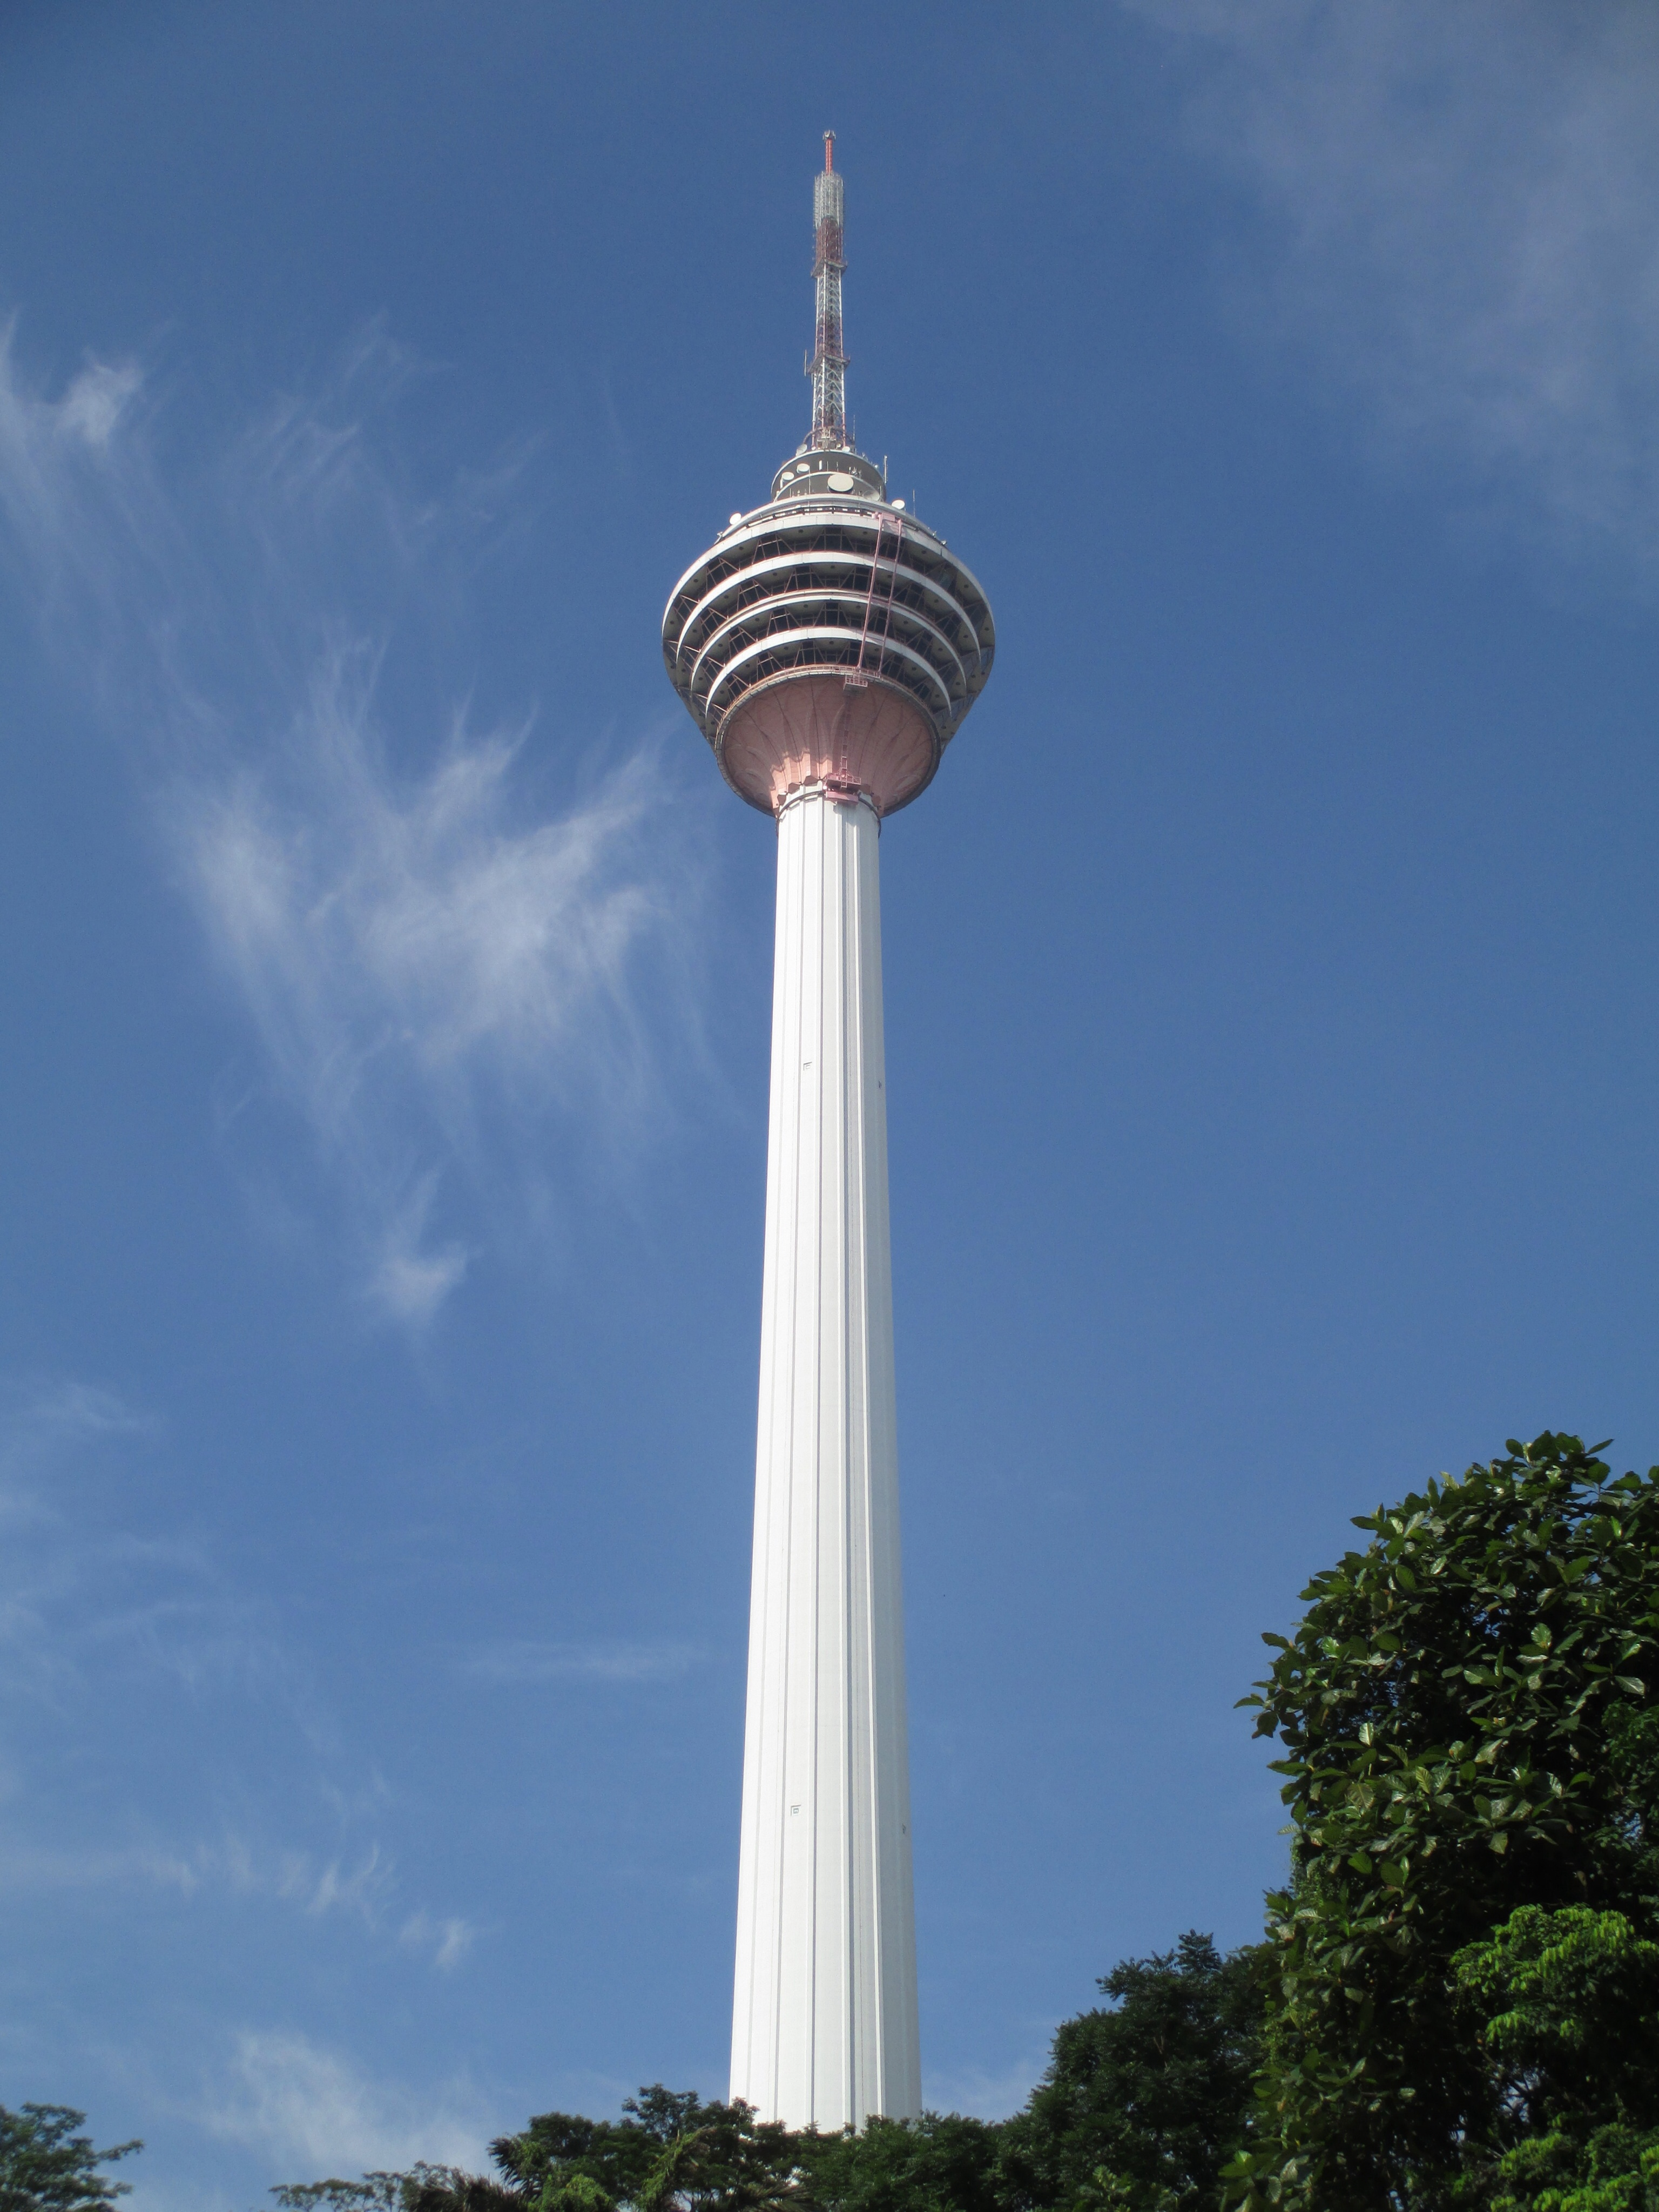 Kl Tower Kl towerKl Tower